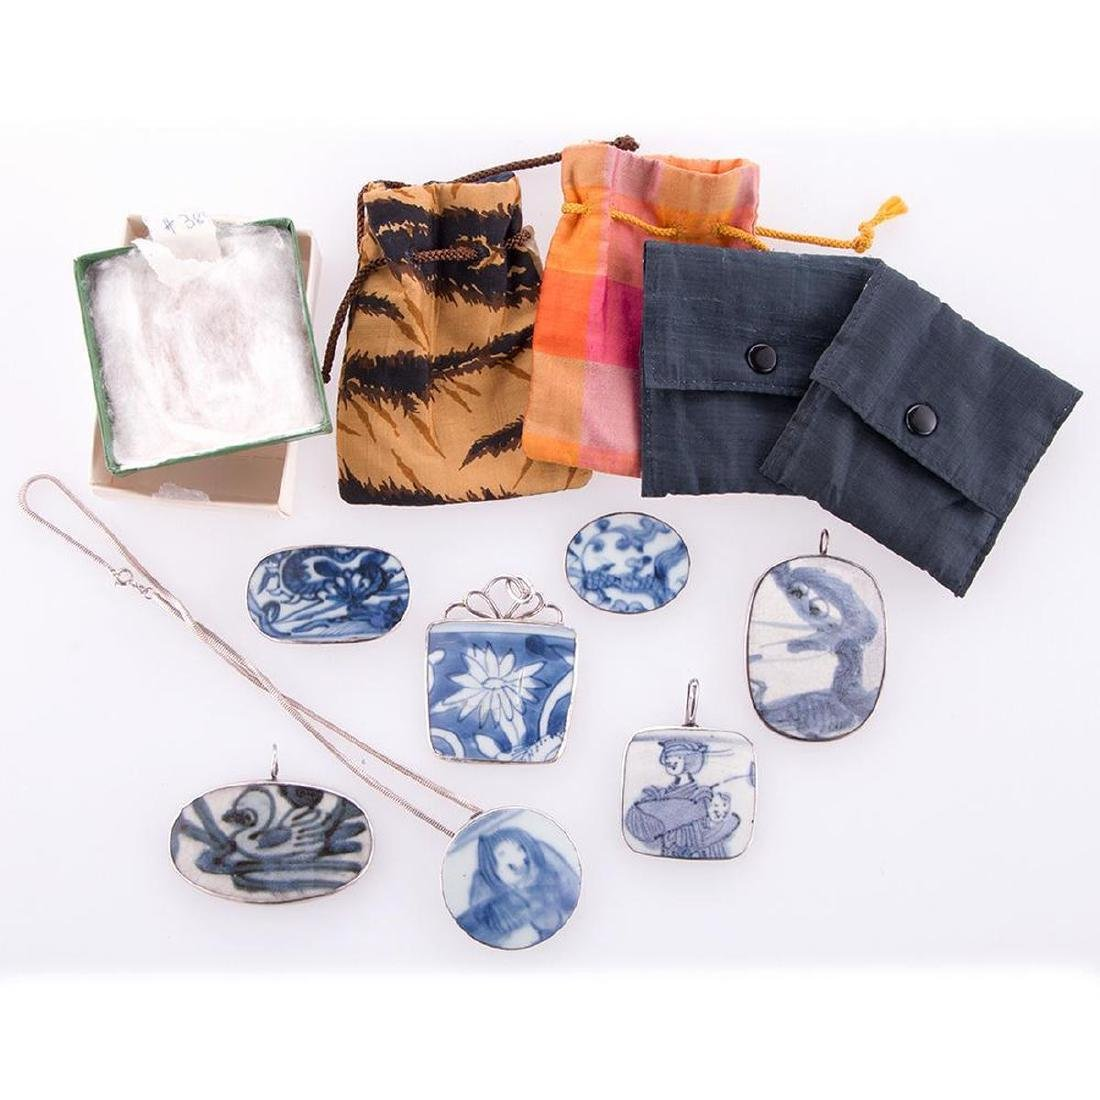 Collection of Asian pendants and purses.